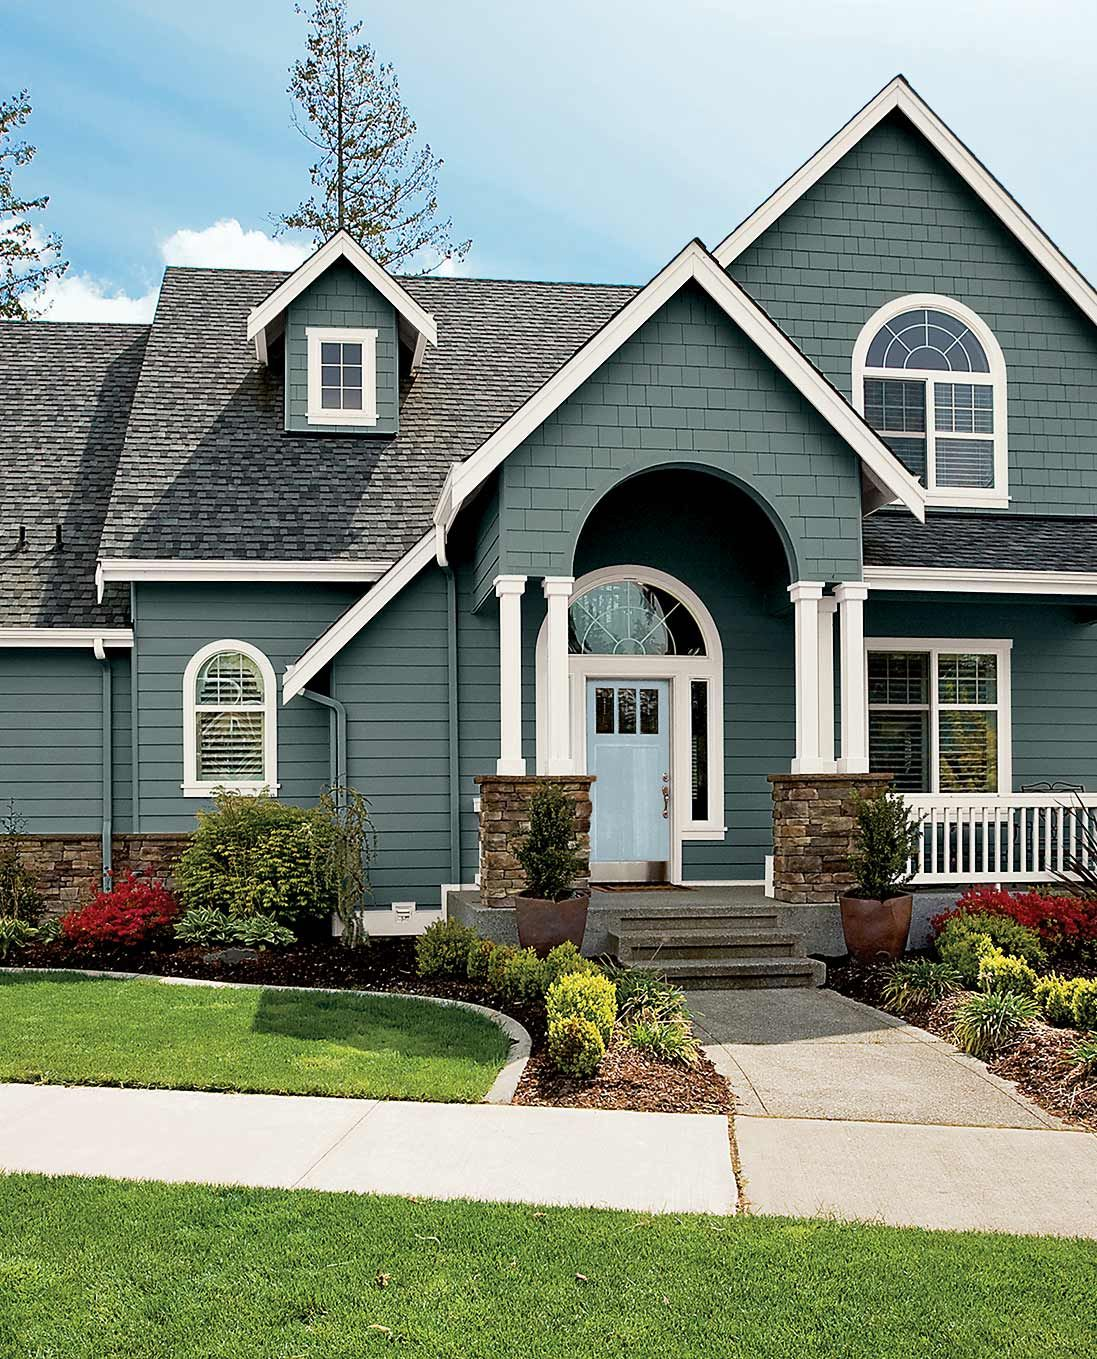 Beautiful Home Exterior Colors: Popular Exterior Paint Colors By Region